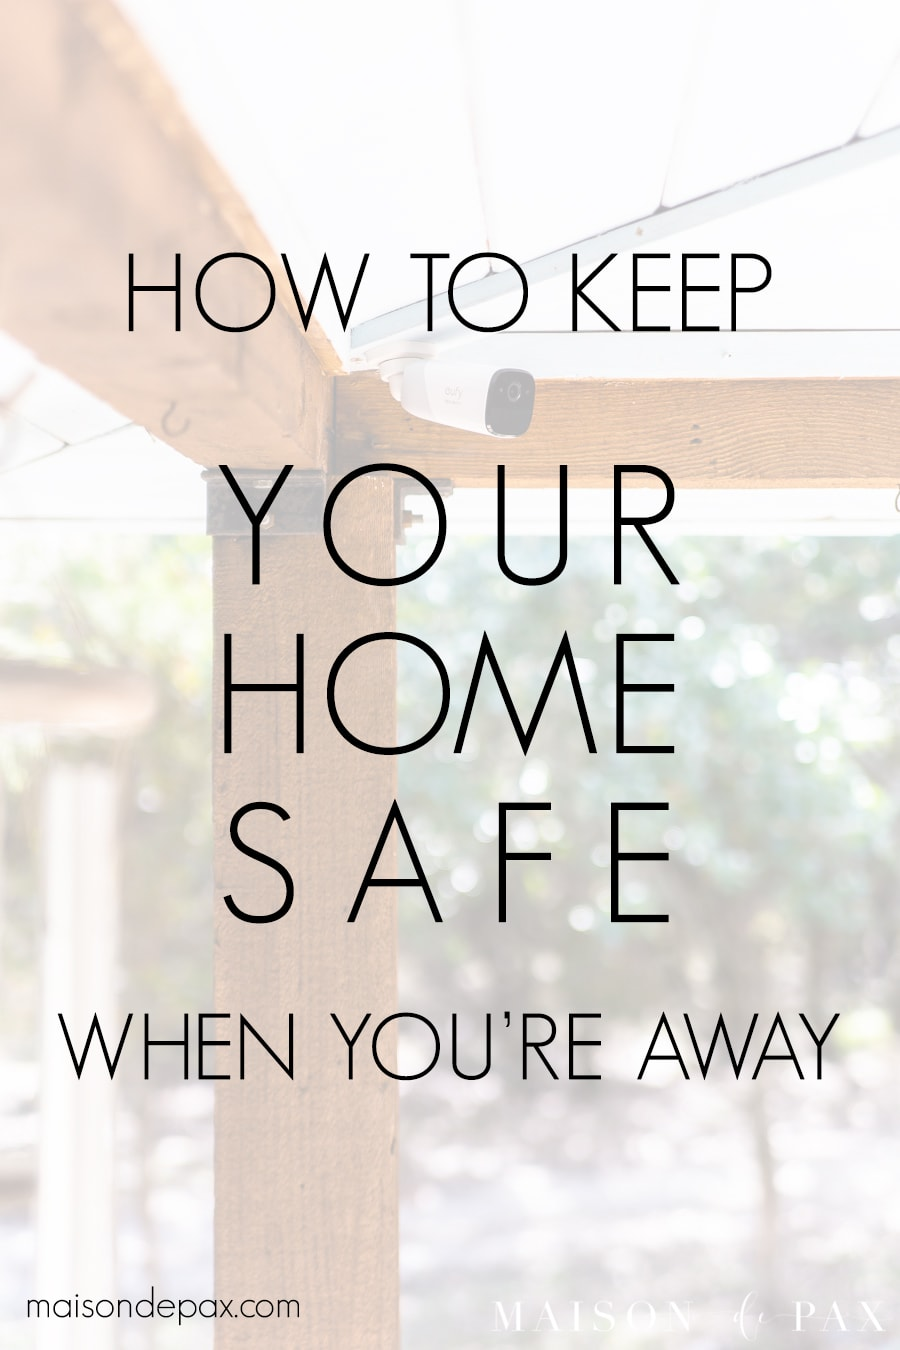 security camera with overlay: how to keep your home safe when you're away | Maison de Pax